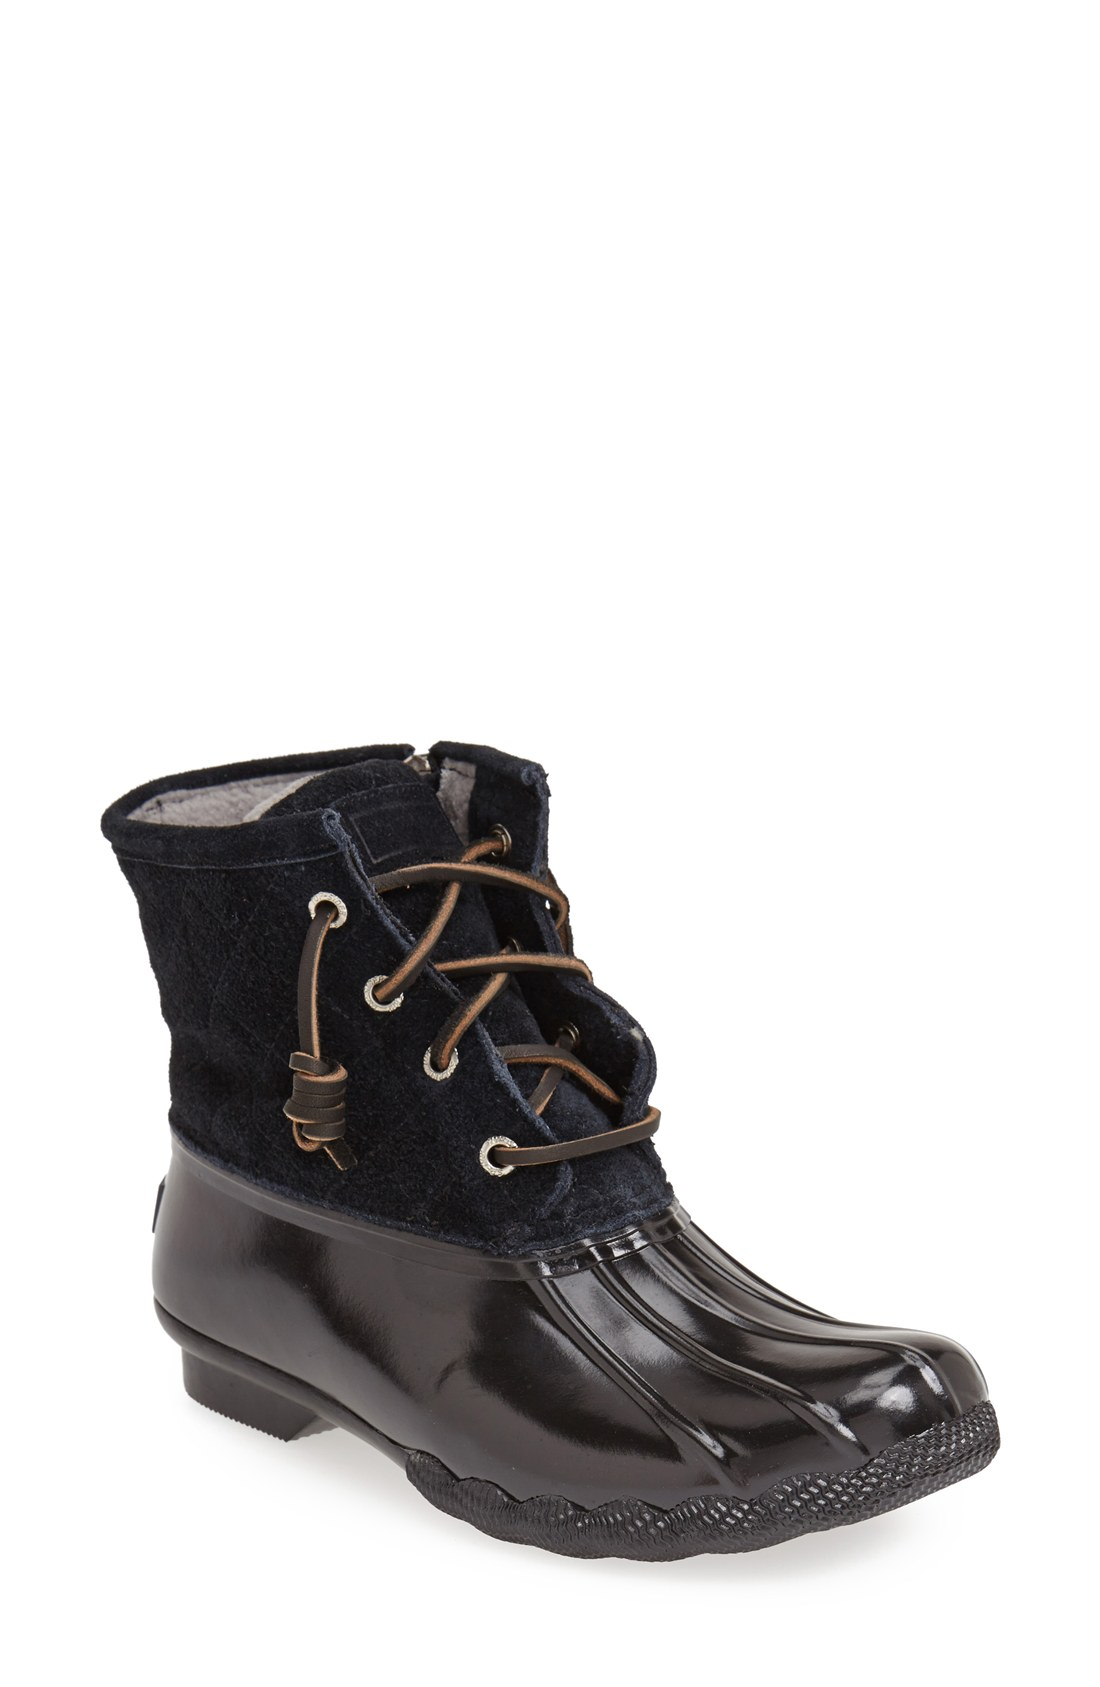 Black Boots Women 06wAY9qO